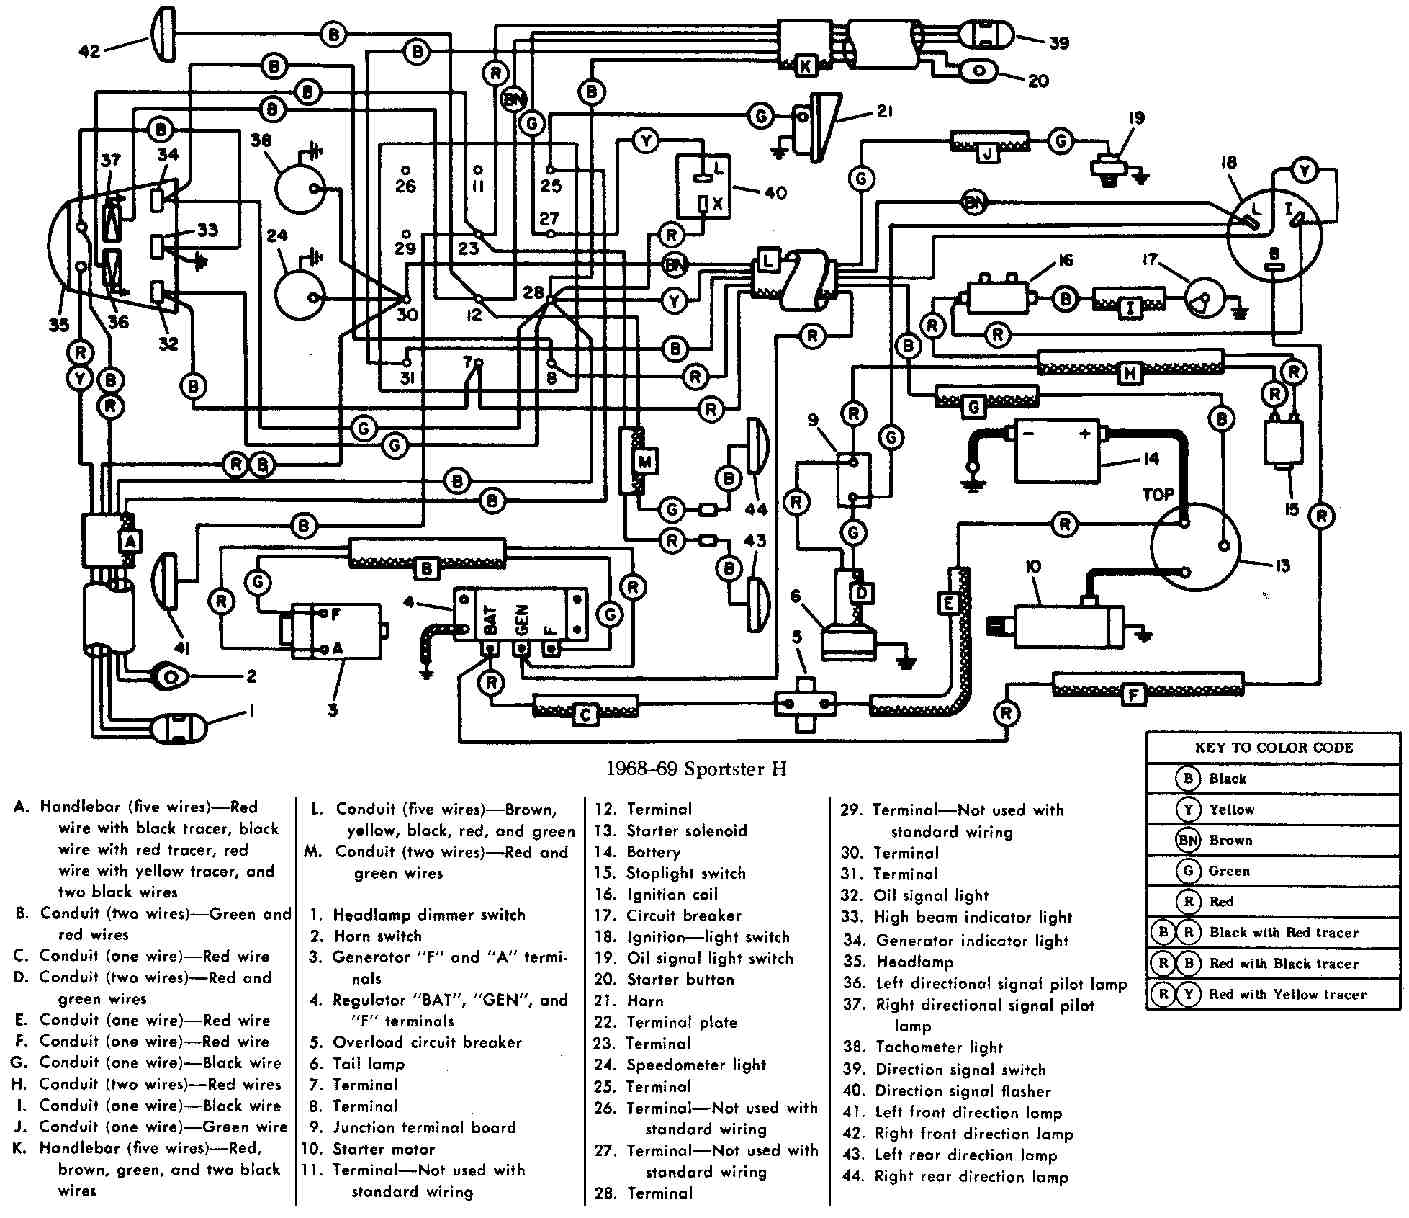 harley davidson 883 engine diagram